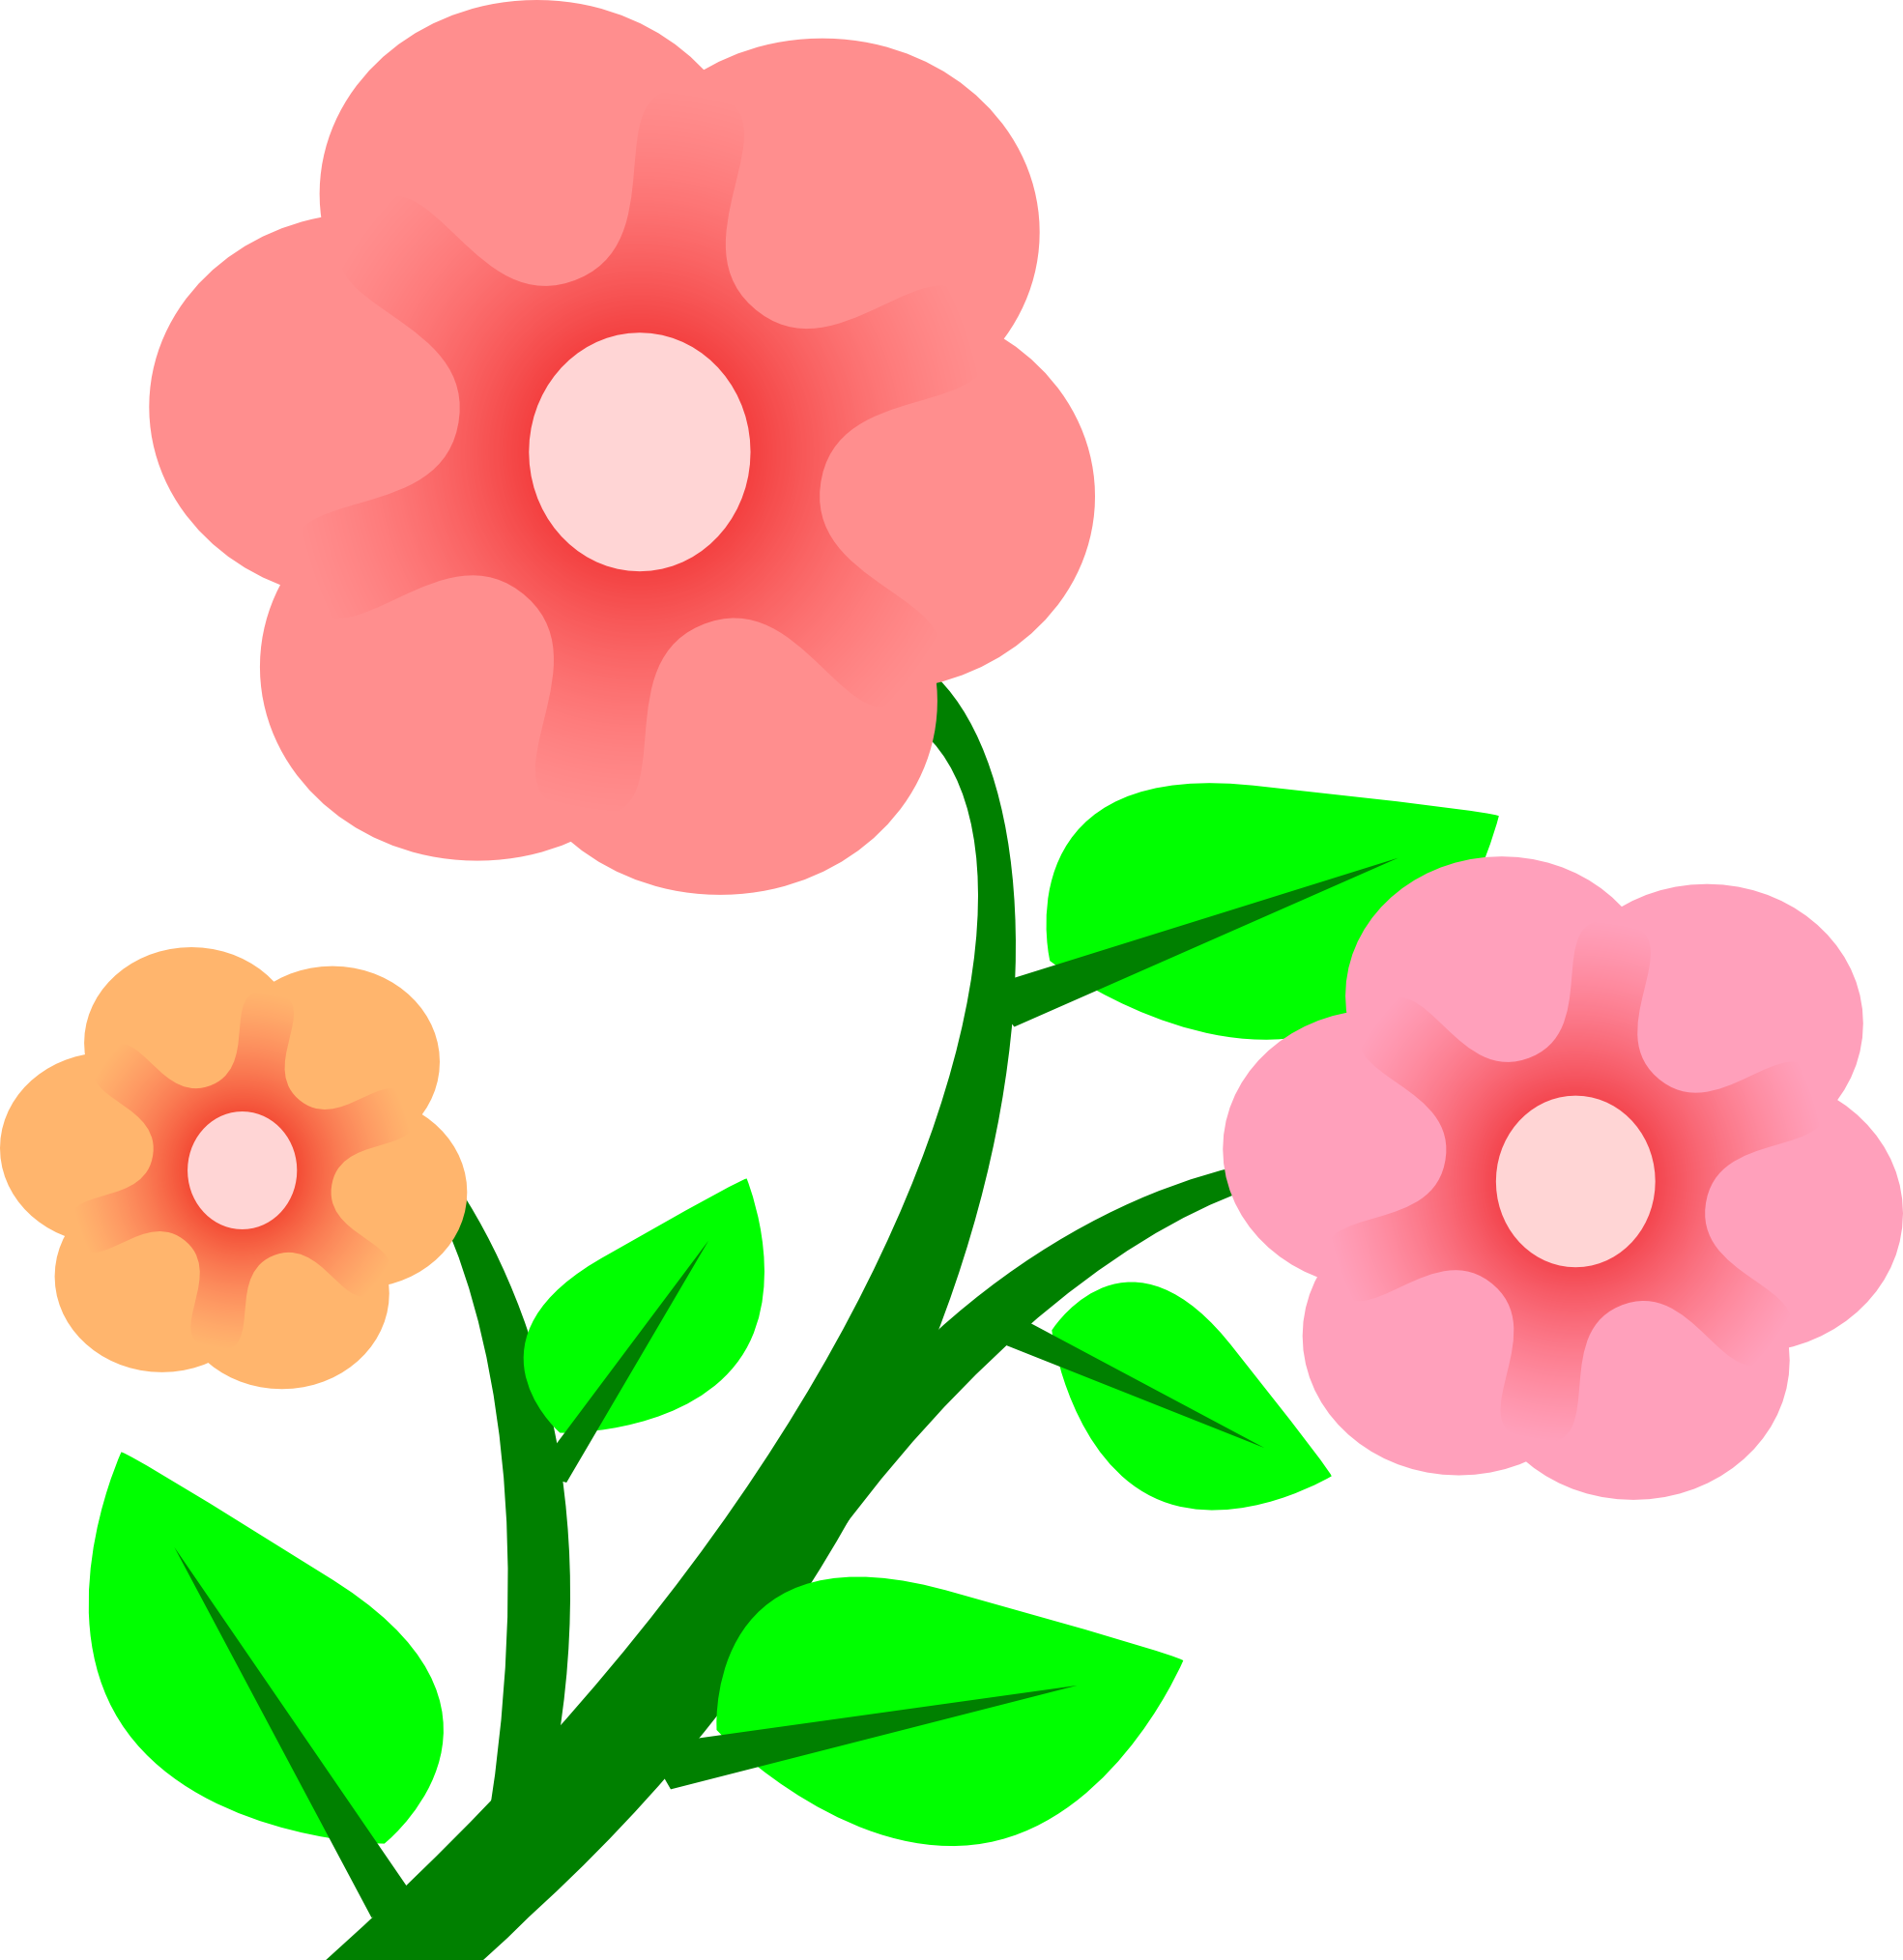 Flores clipart vector svg freeuse stock Free Flores Png Vector, Download Free Clip Art, Free Clip Art on ... svg freeuse stock